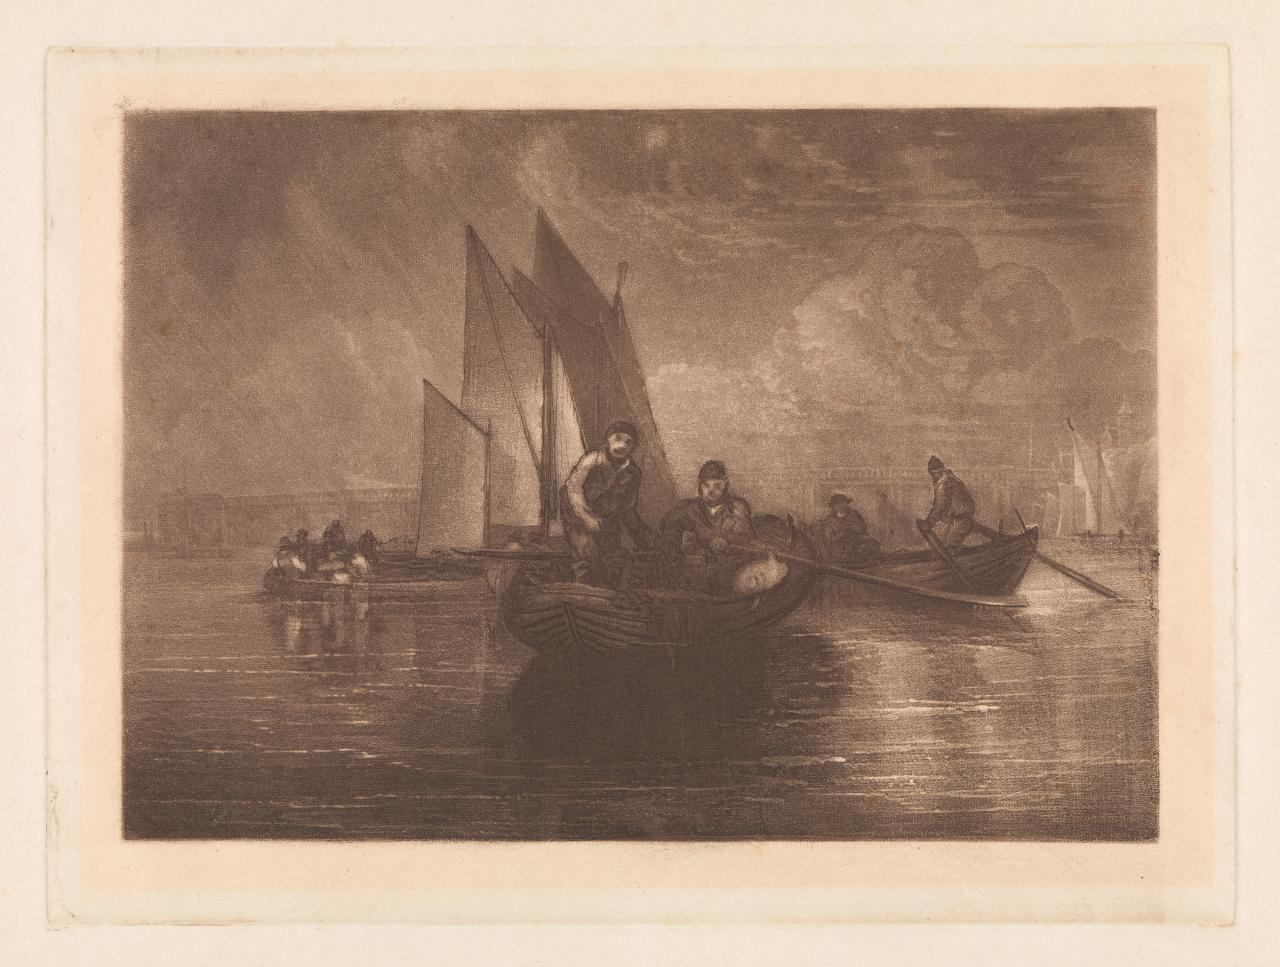 Flounder fishing,Battersea (Liber Studiorum)